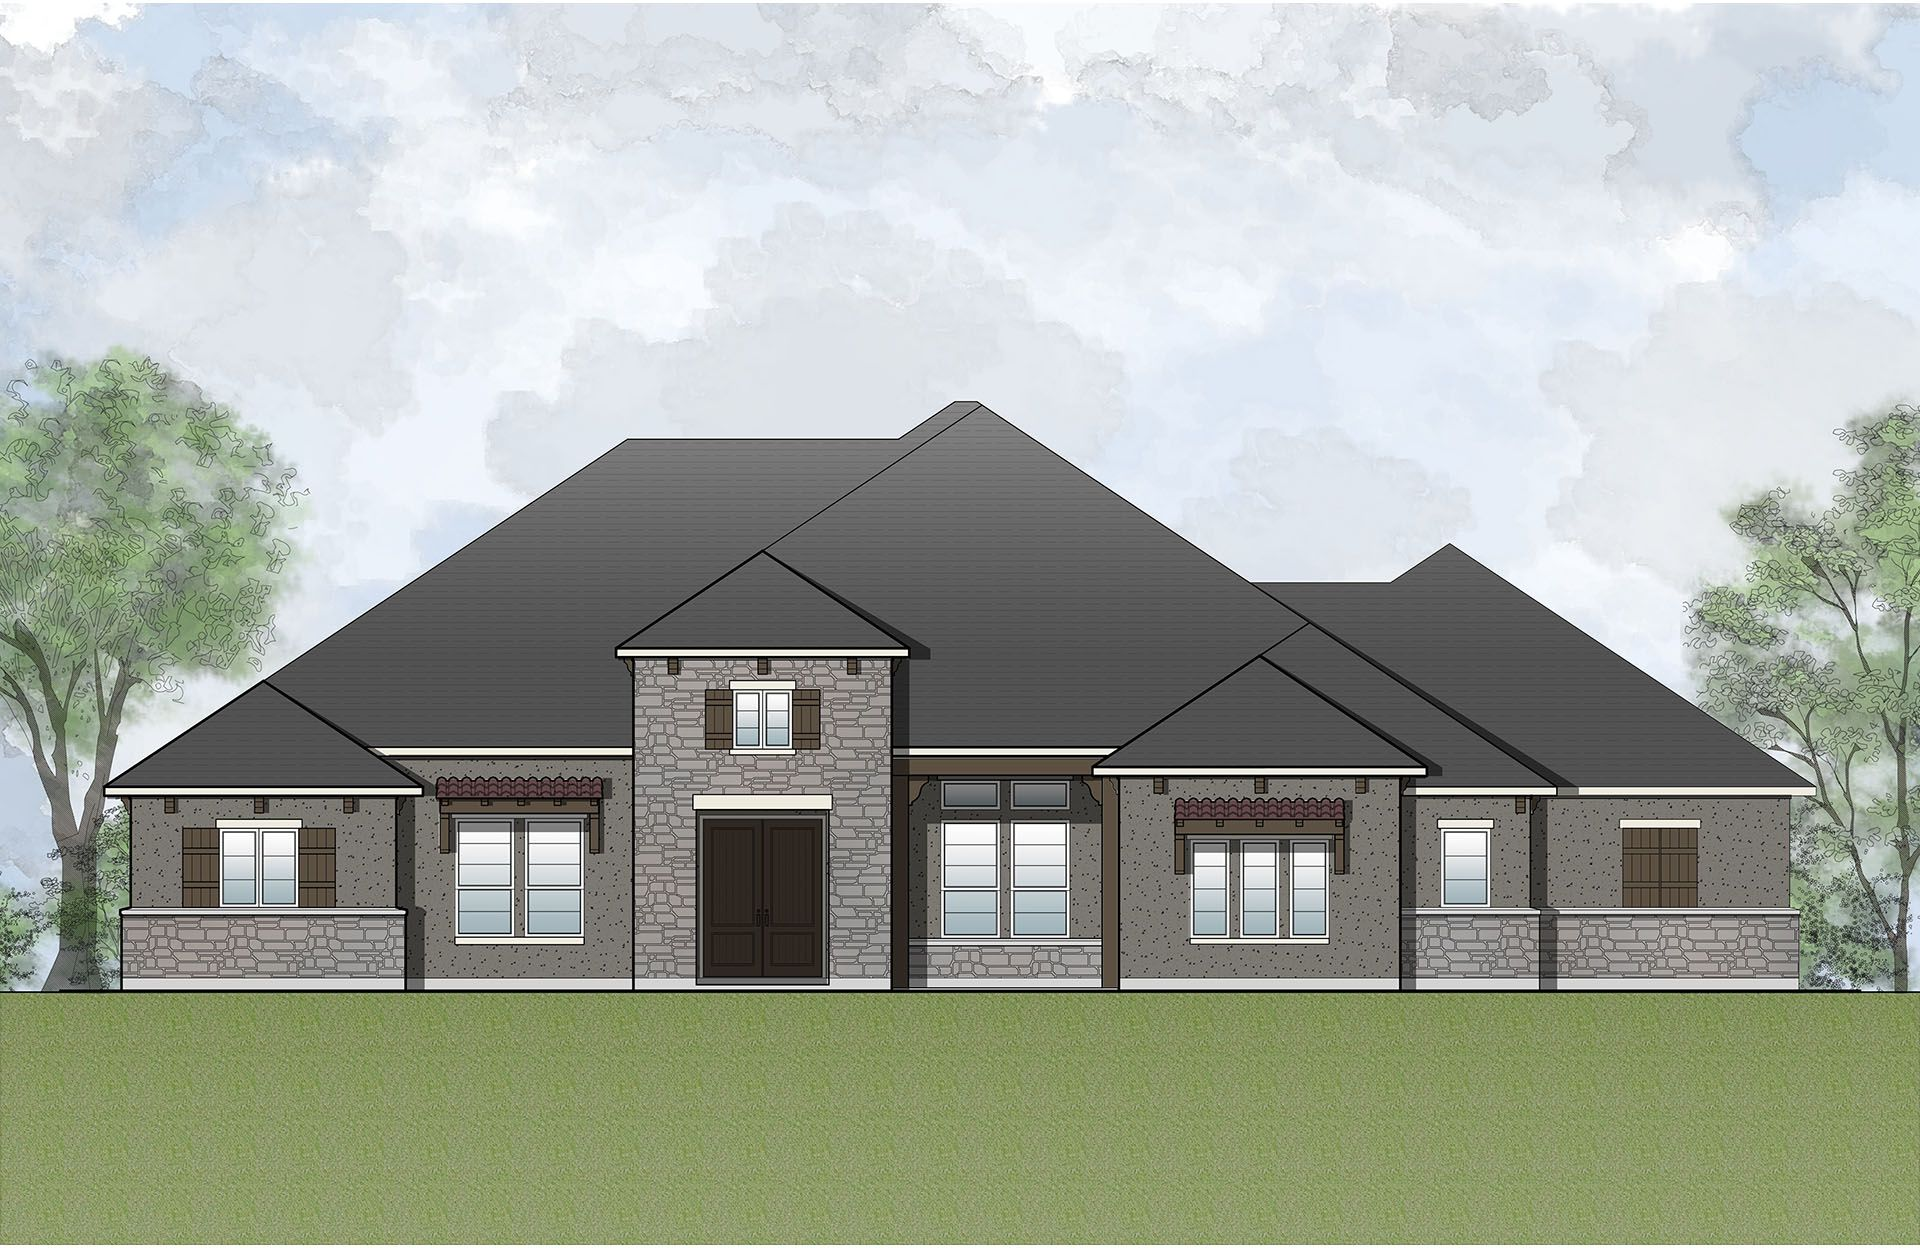 Single Family for Active at Channing Ii 505 Houston Loop Liberty Hill, Texas 78642 United States